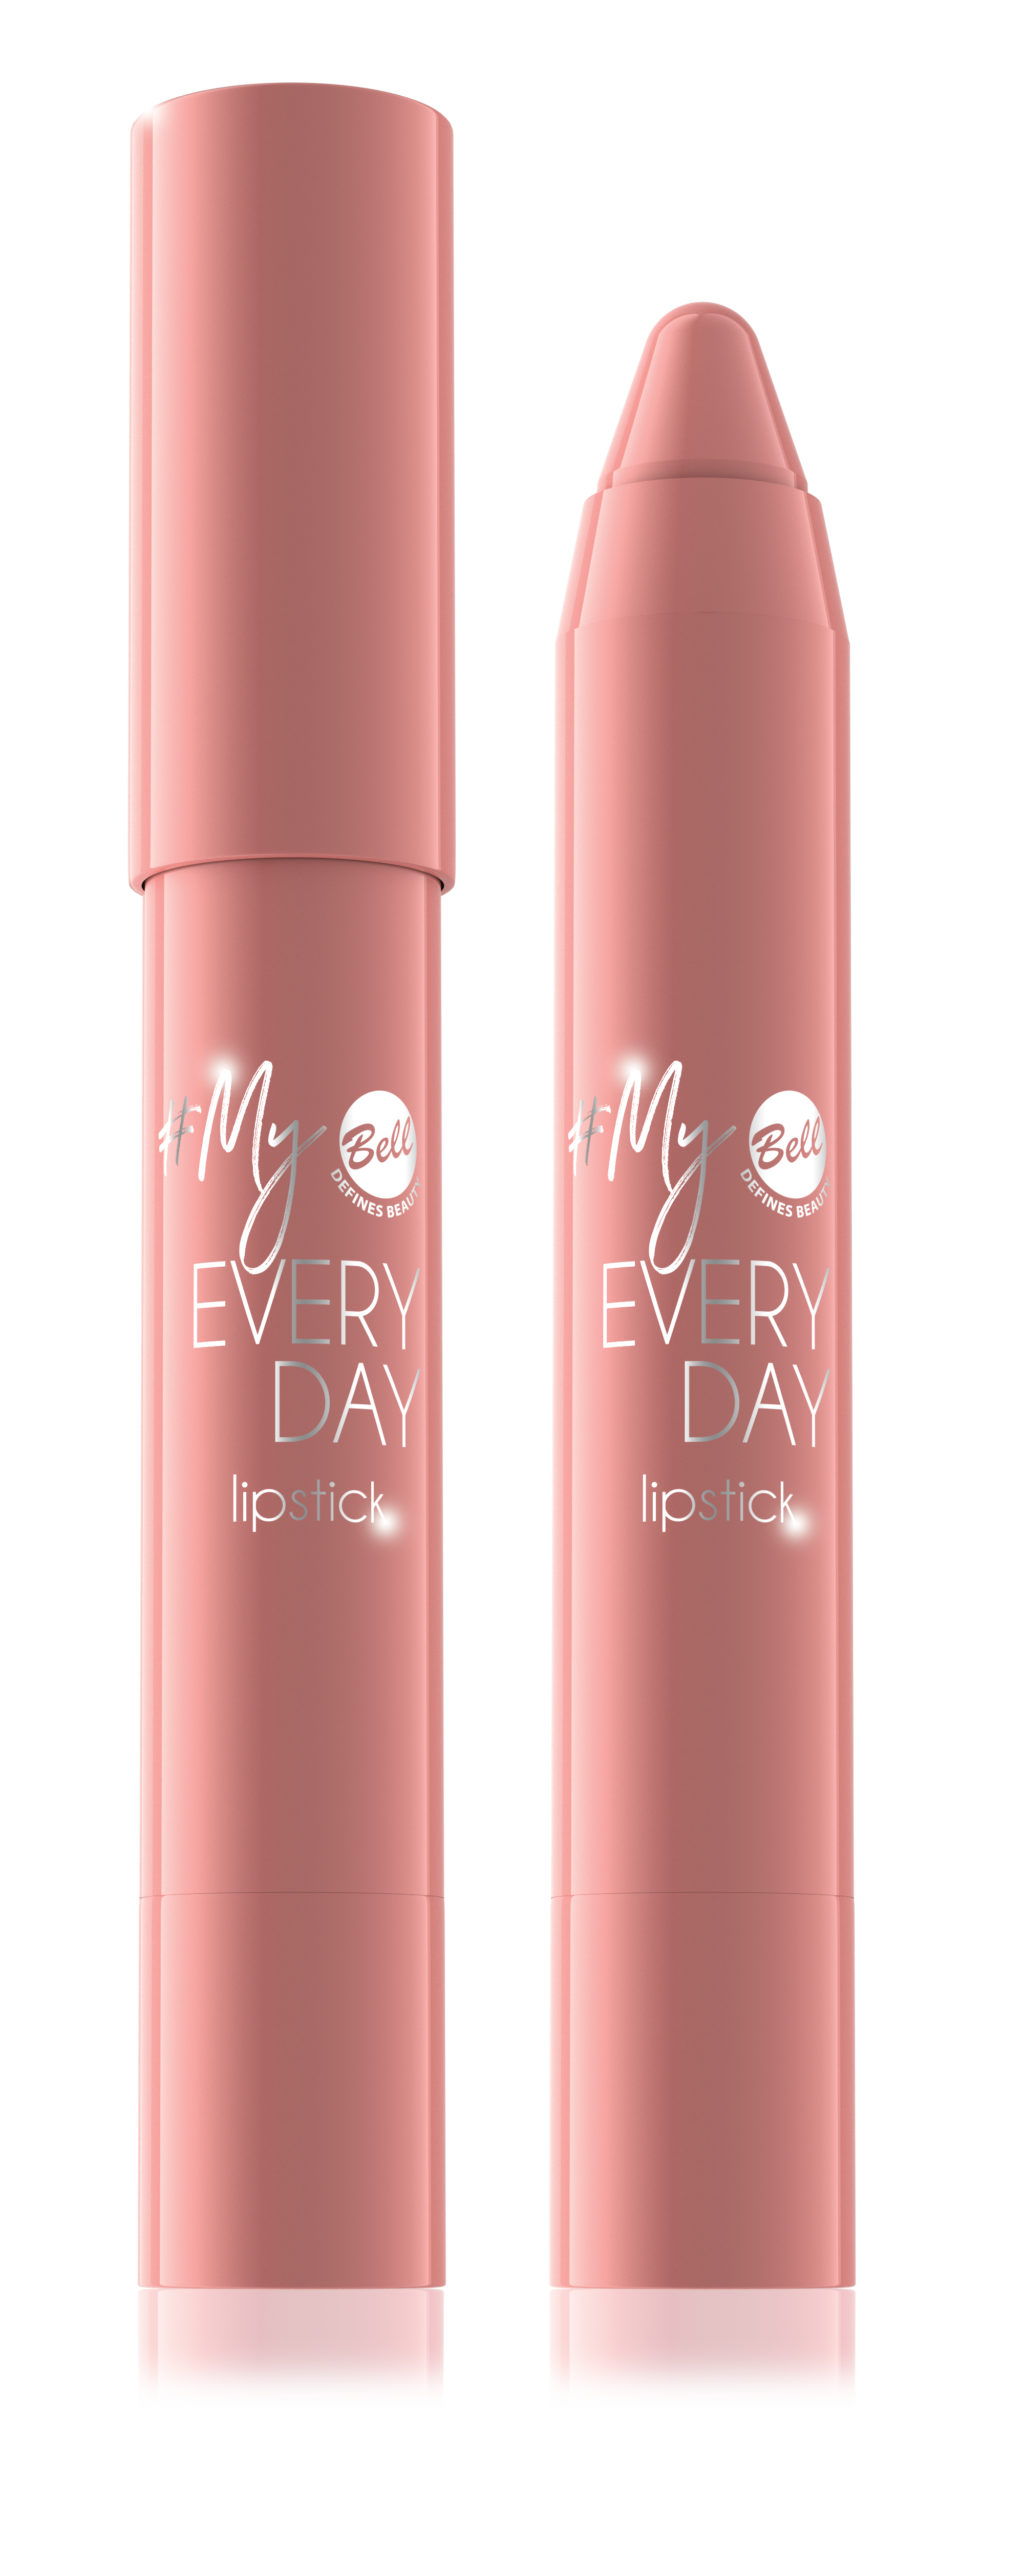 #My Everyday Lipstick